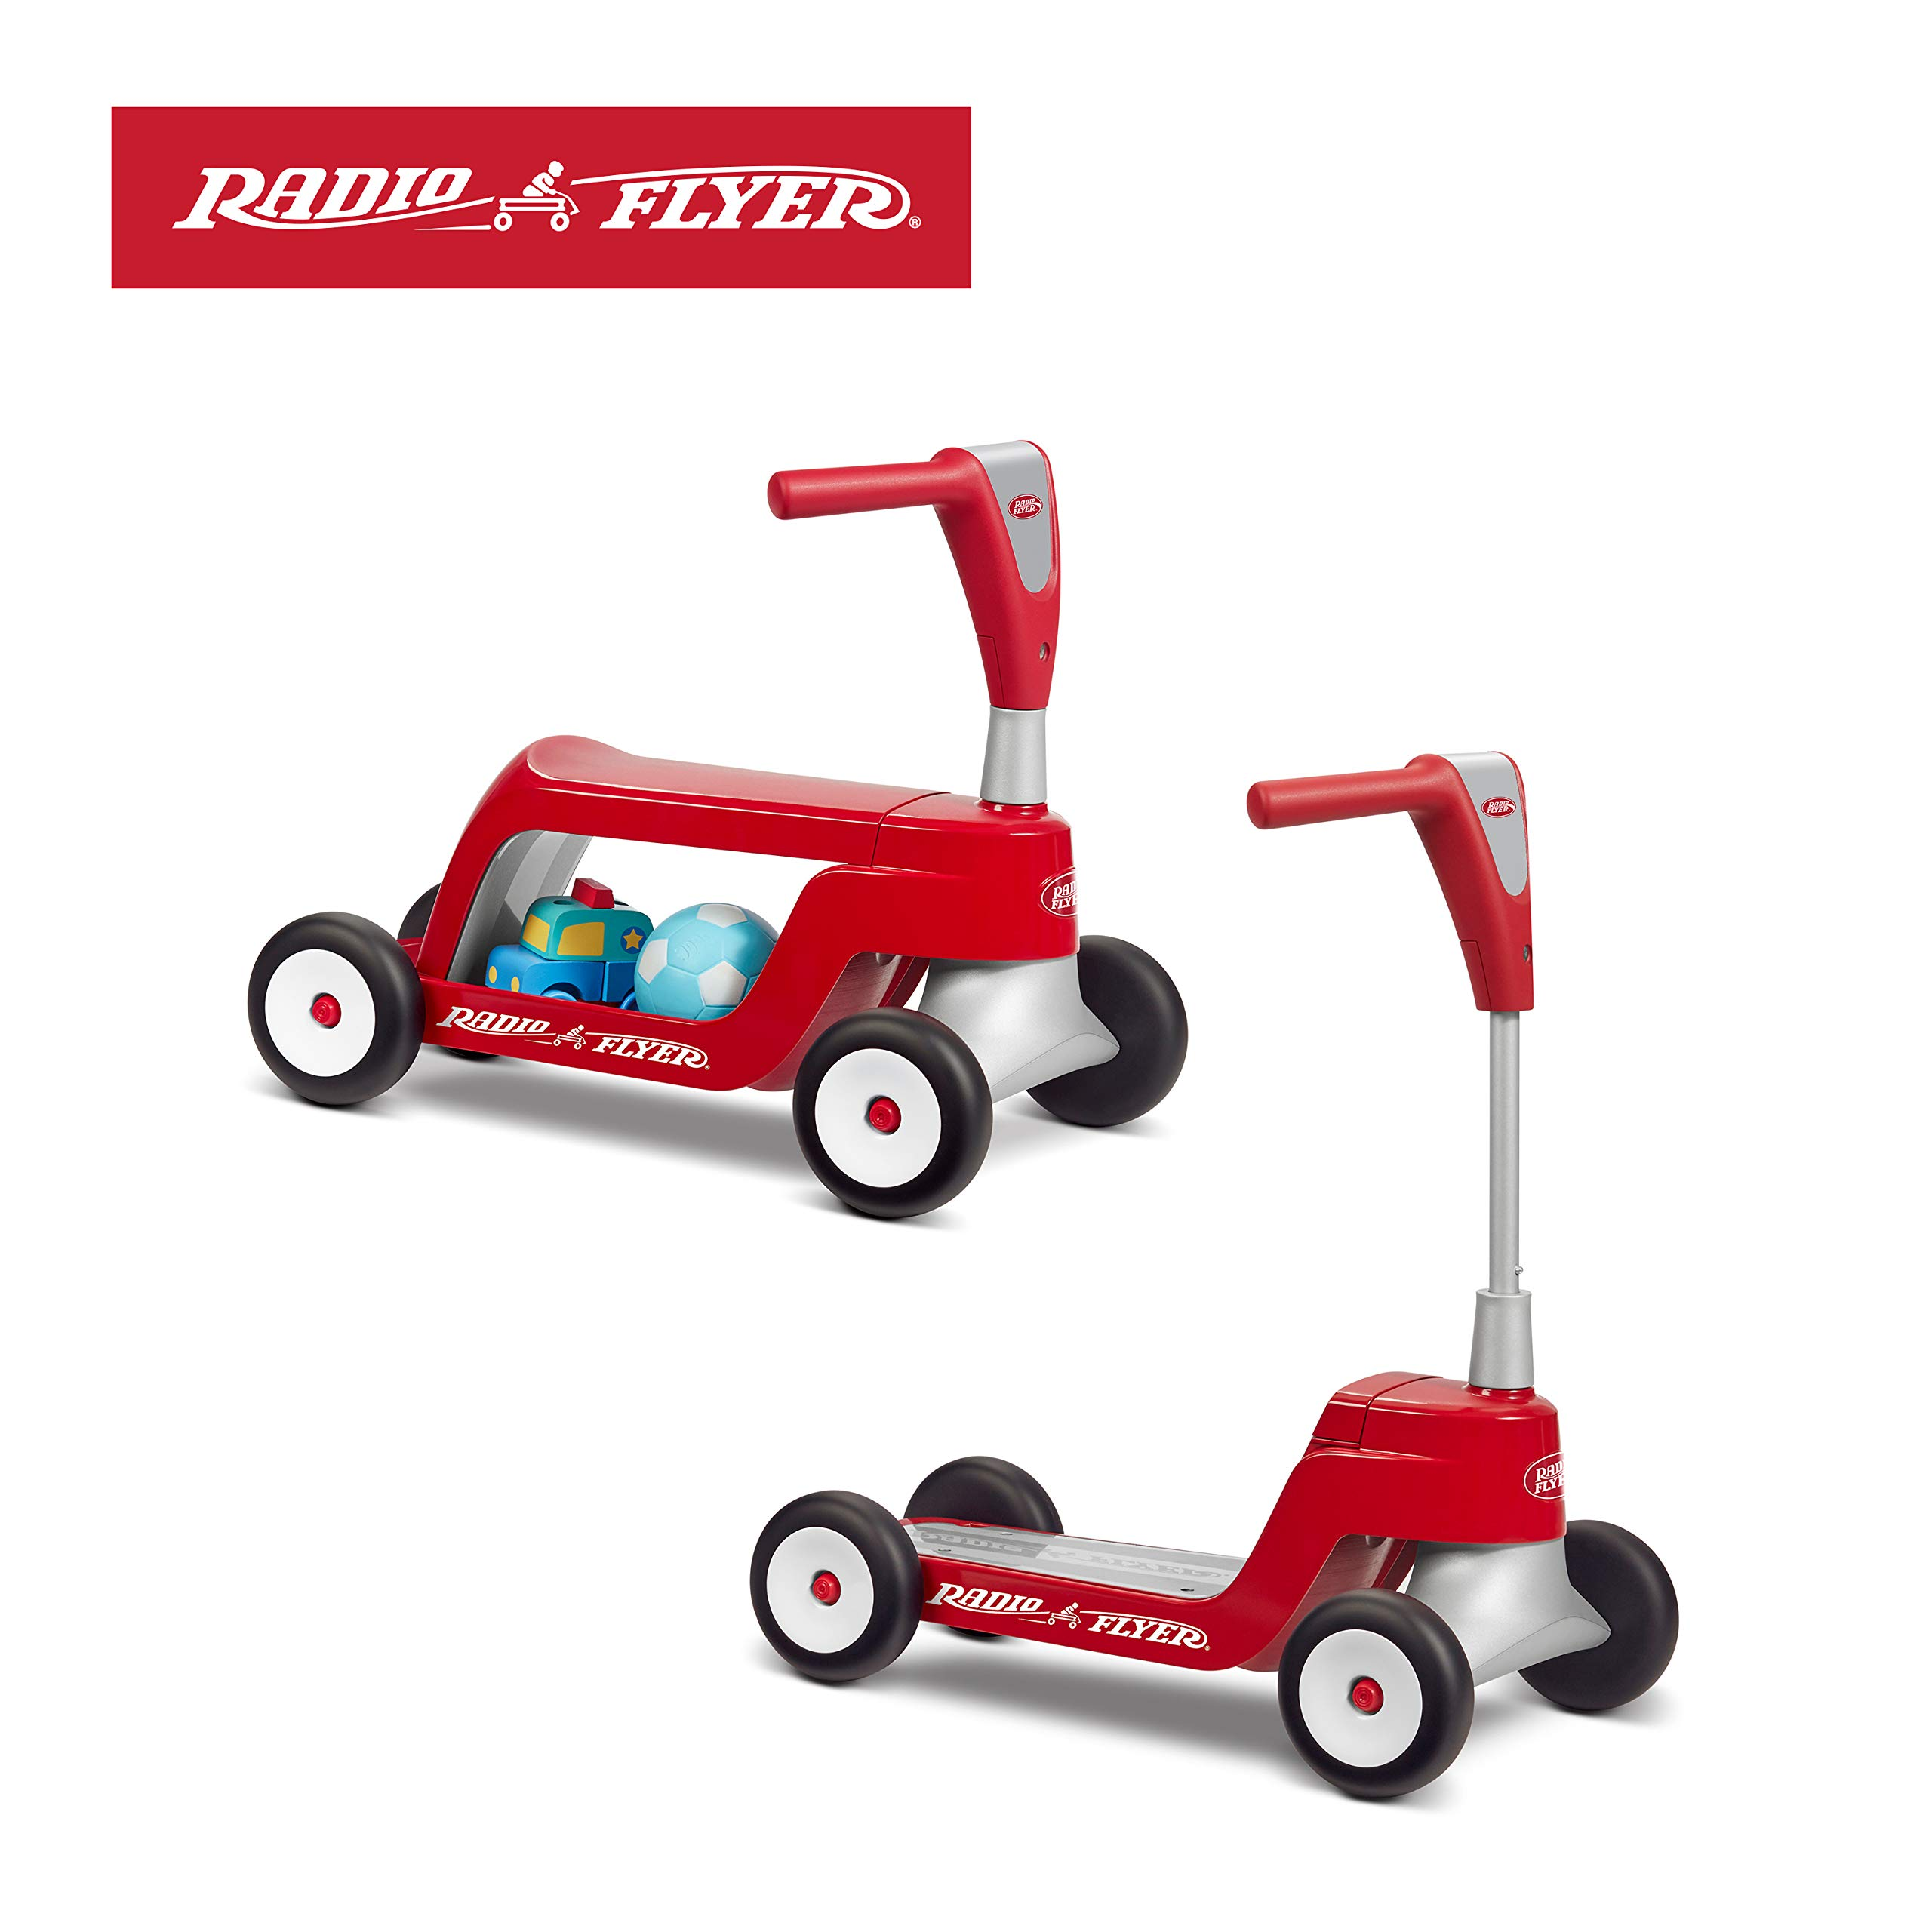 Radio Flyer Scoot 2 Scooter Ride On by Radio Flyer